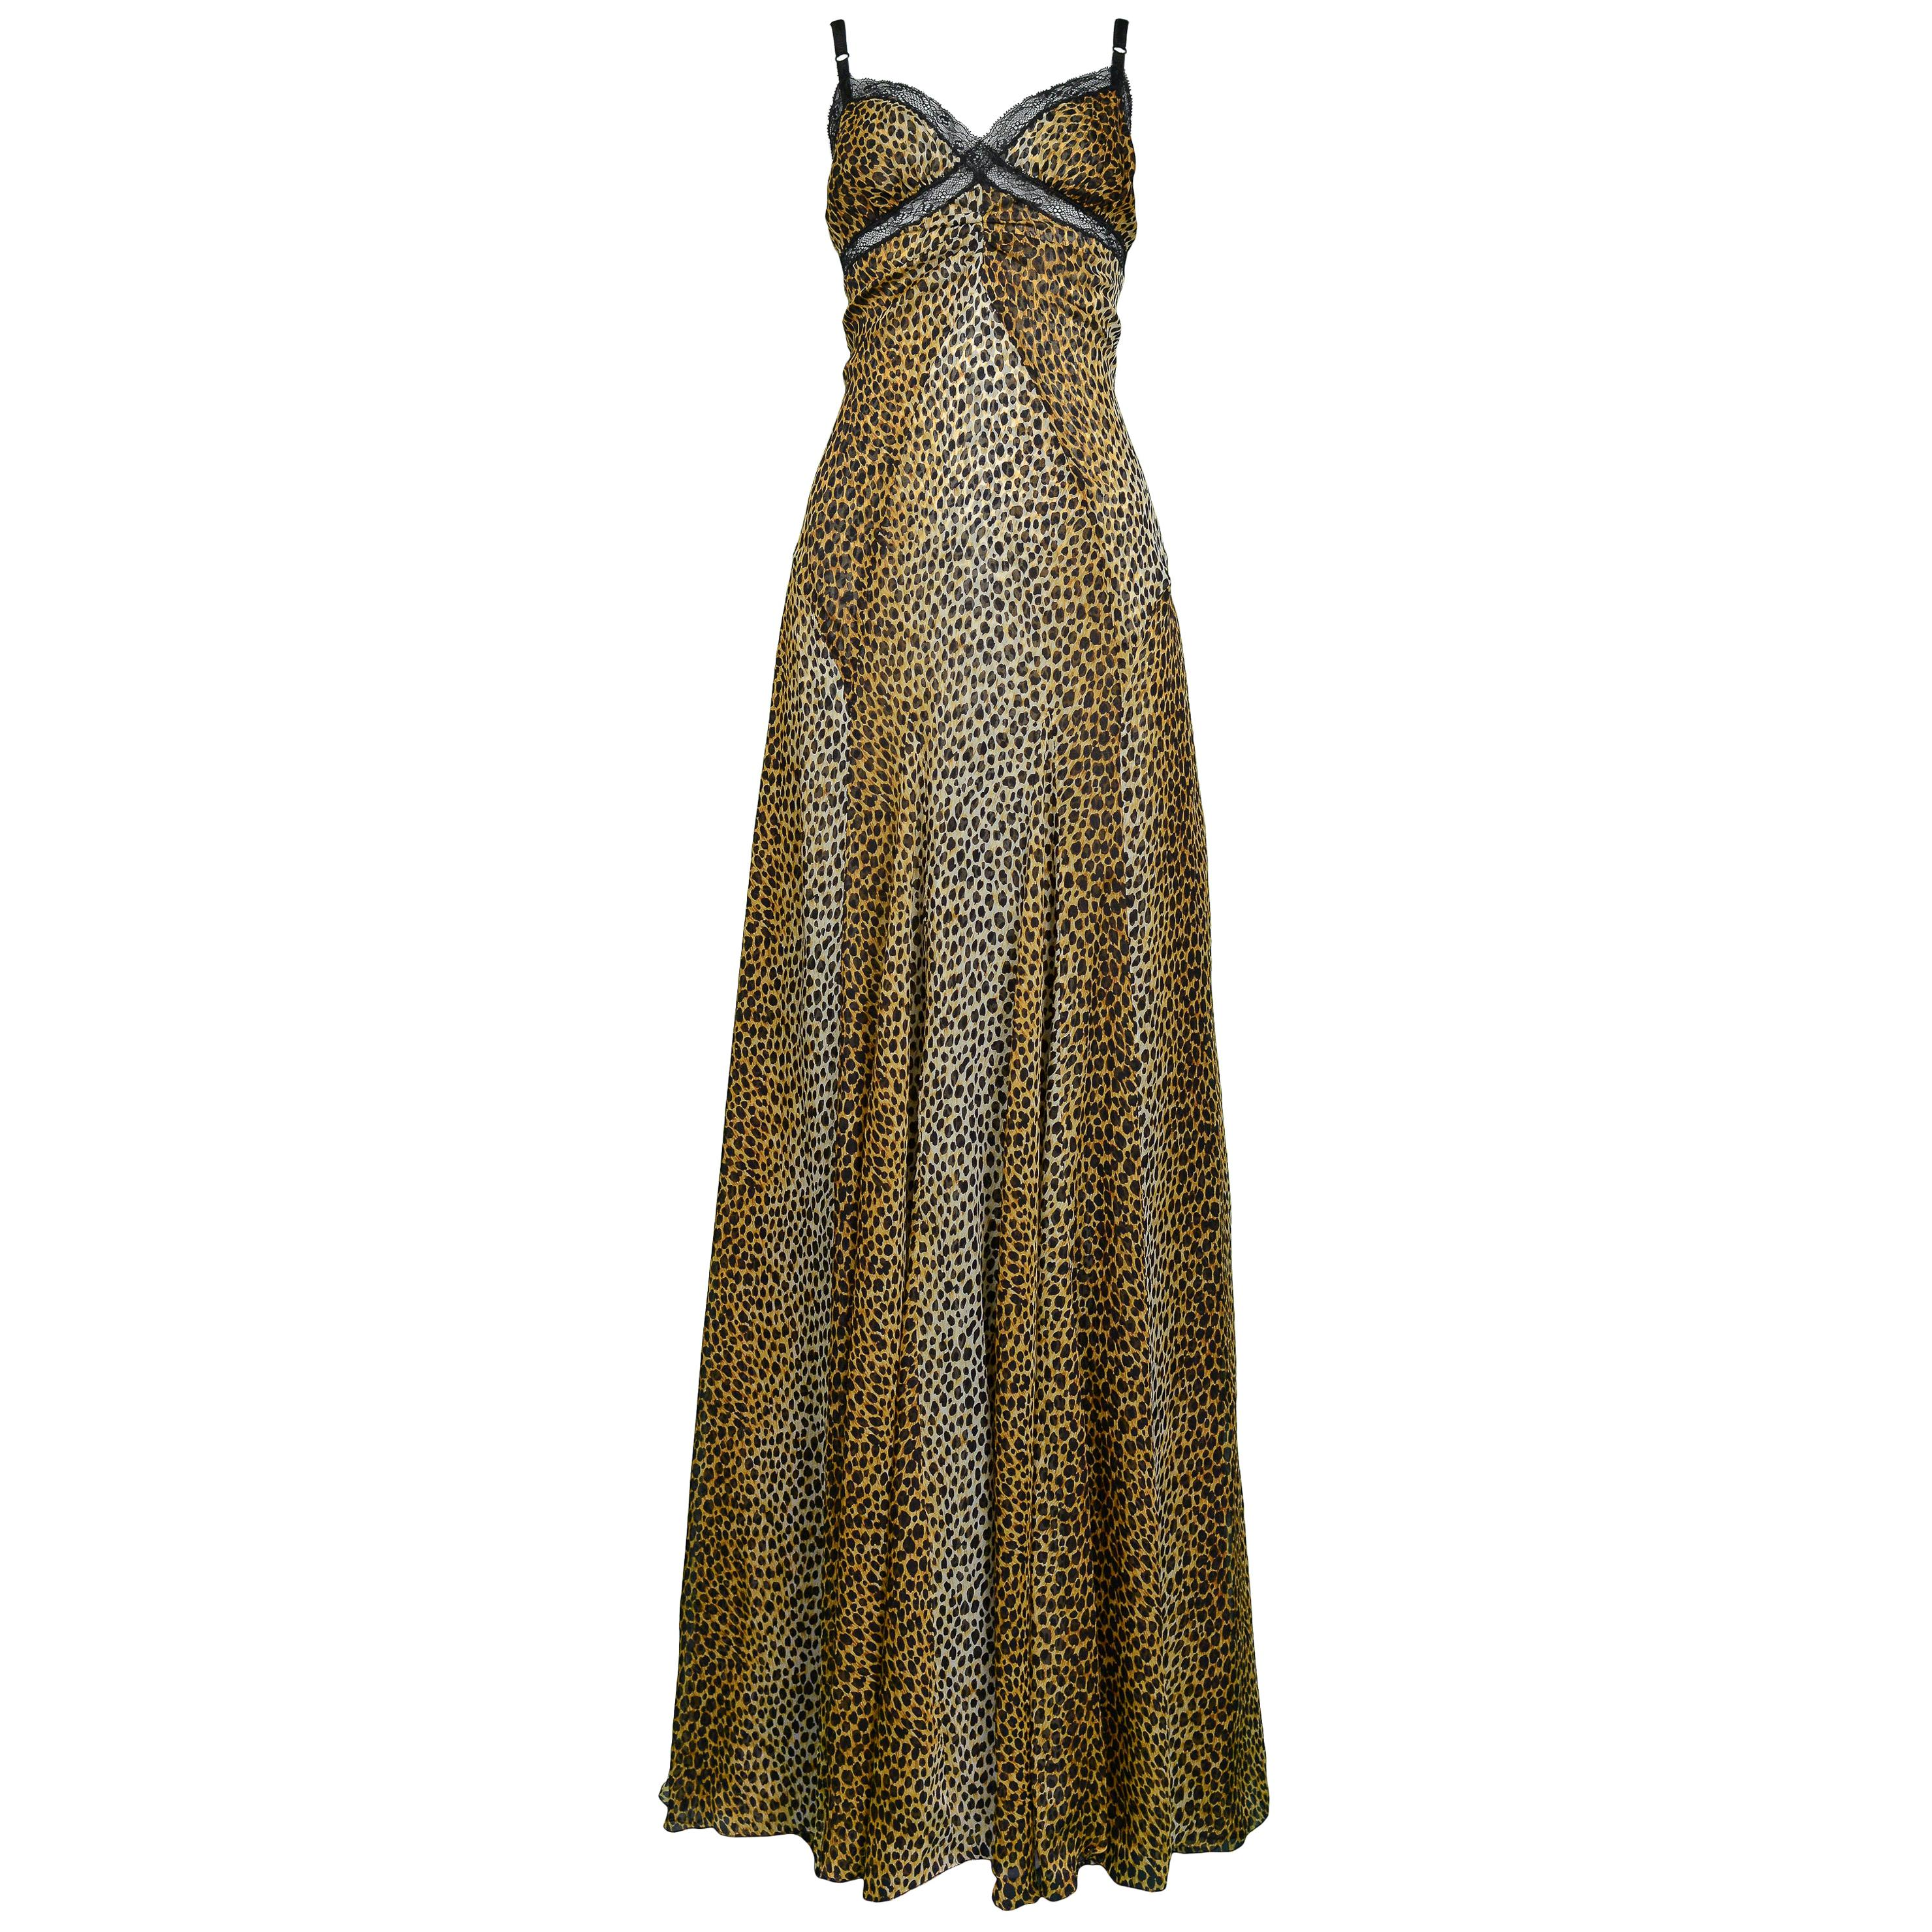 Vintage Dolce & Gabbana Leopard Gown with Train